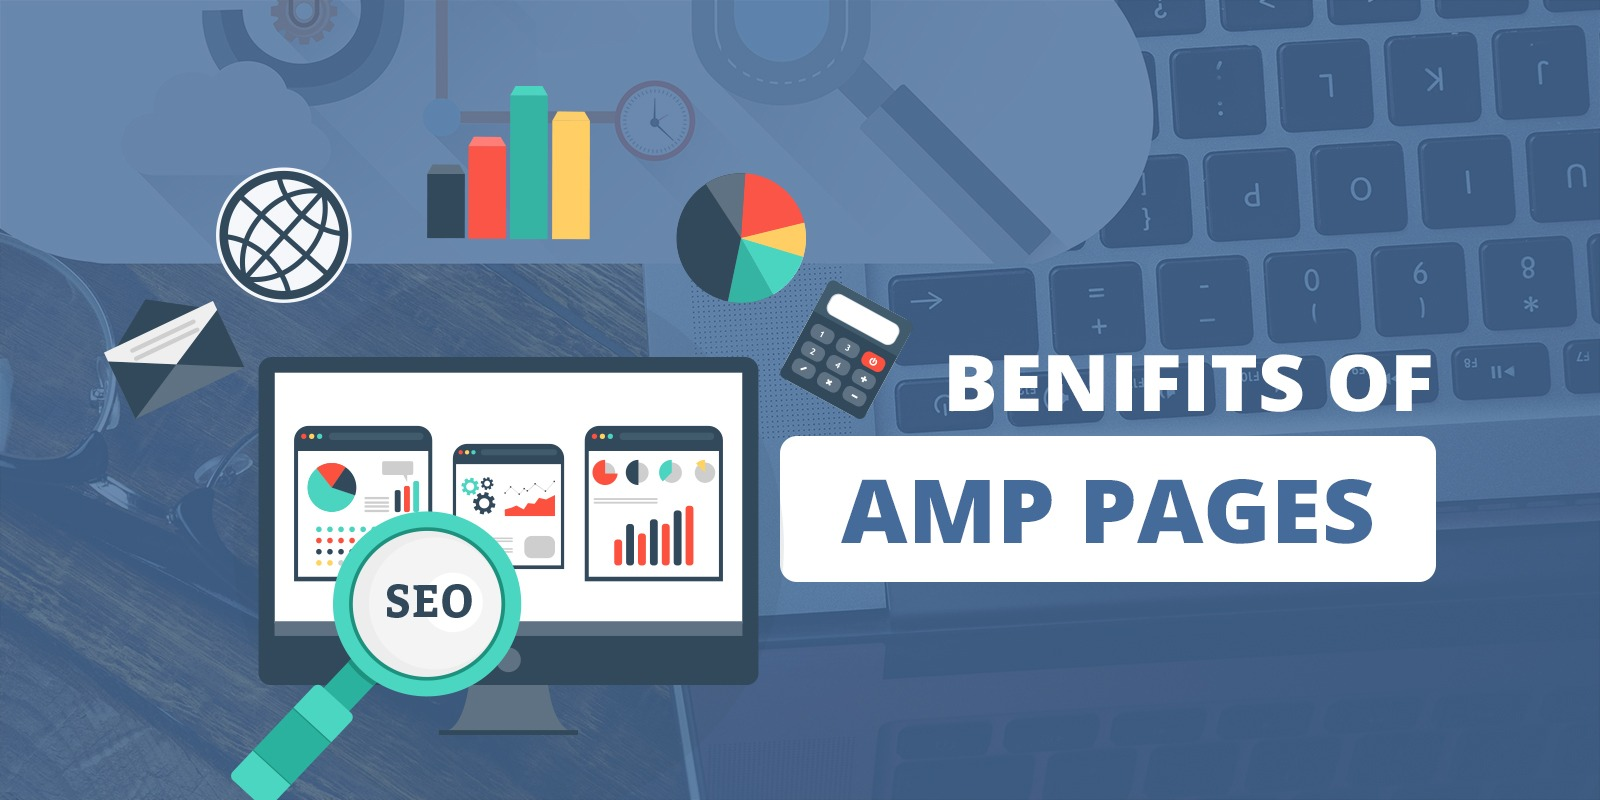 Benefits of using Accelerated Mobile Pages - AMP in a website